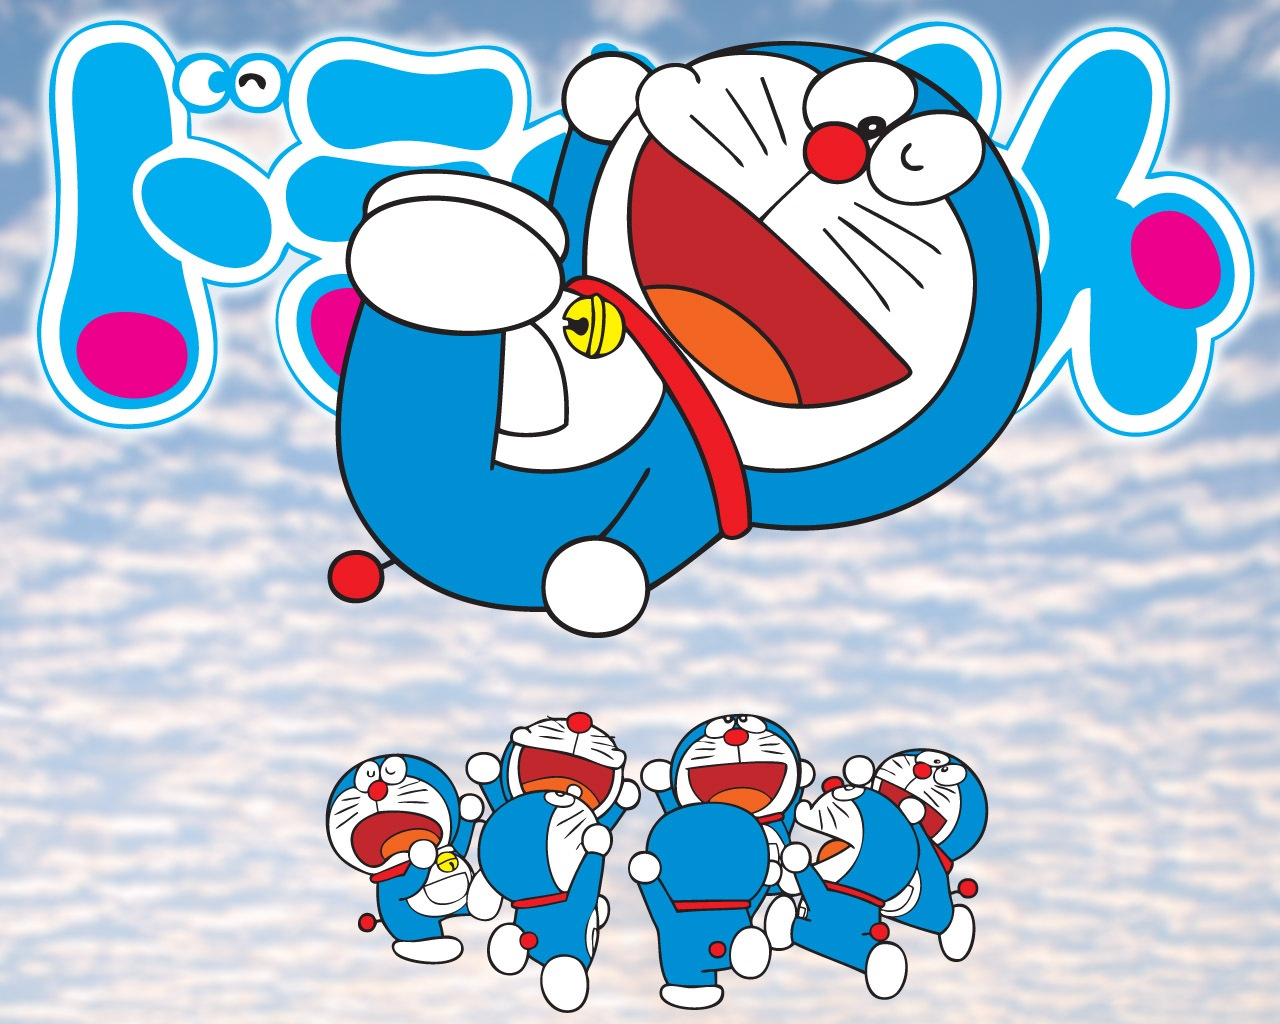 Wallpapers Doraemon Cute And Funny